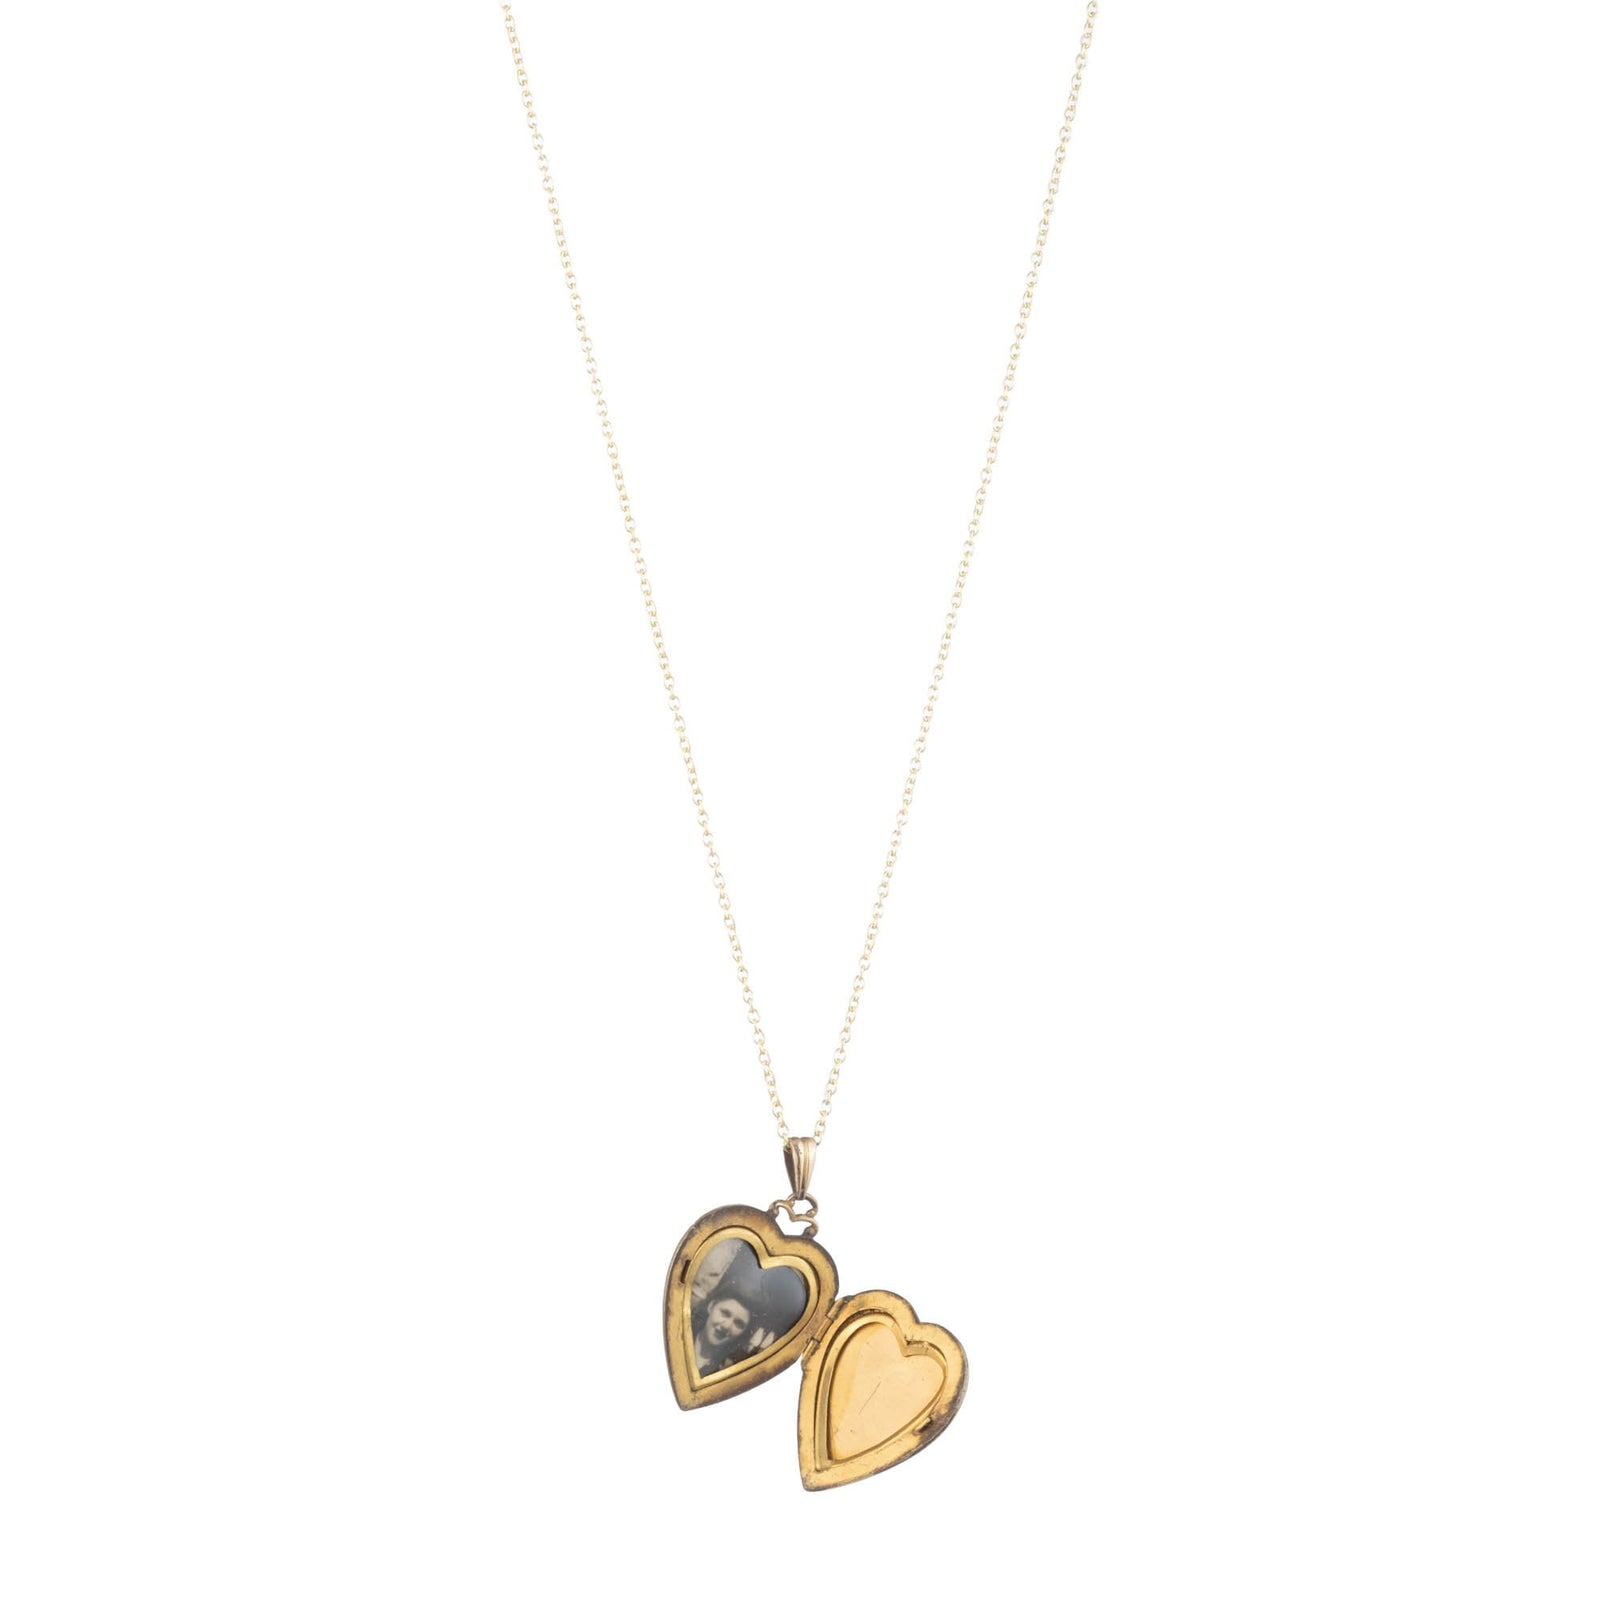 Vintage 1940s Gold Filled Engraved Heart on Heart Locket Necklace